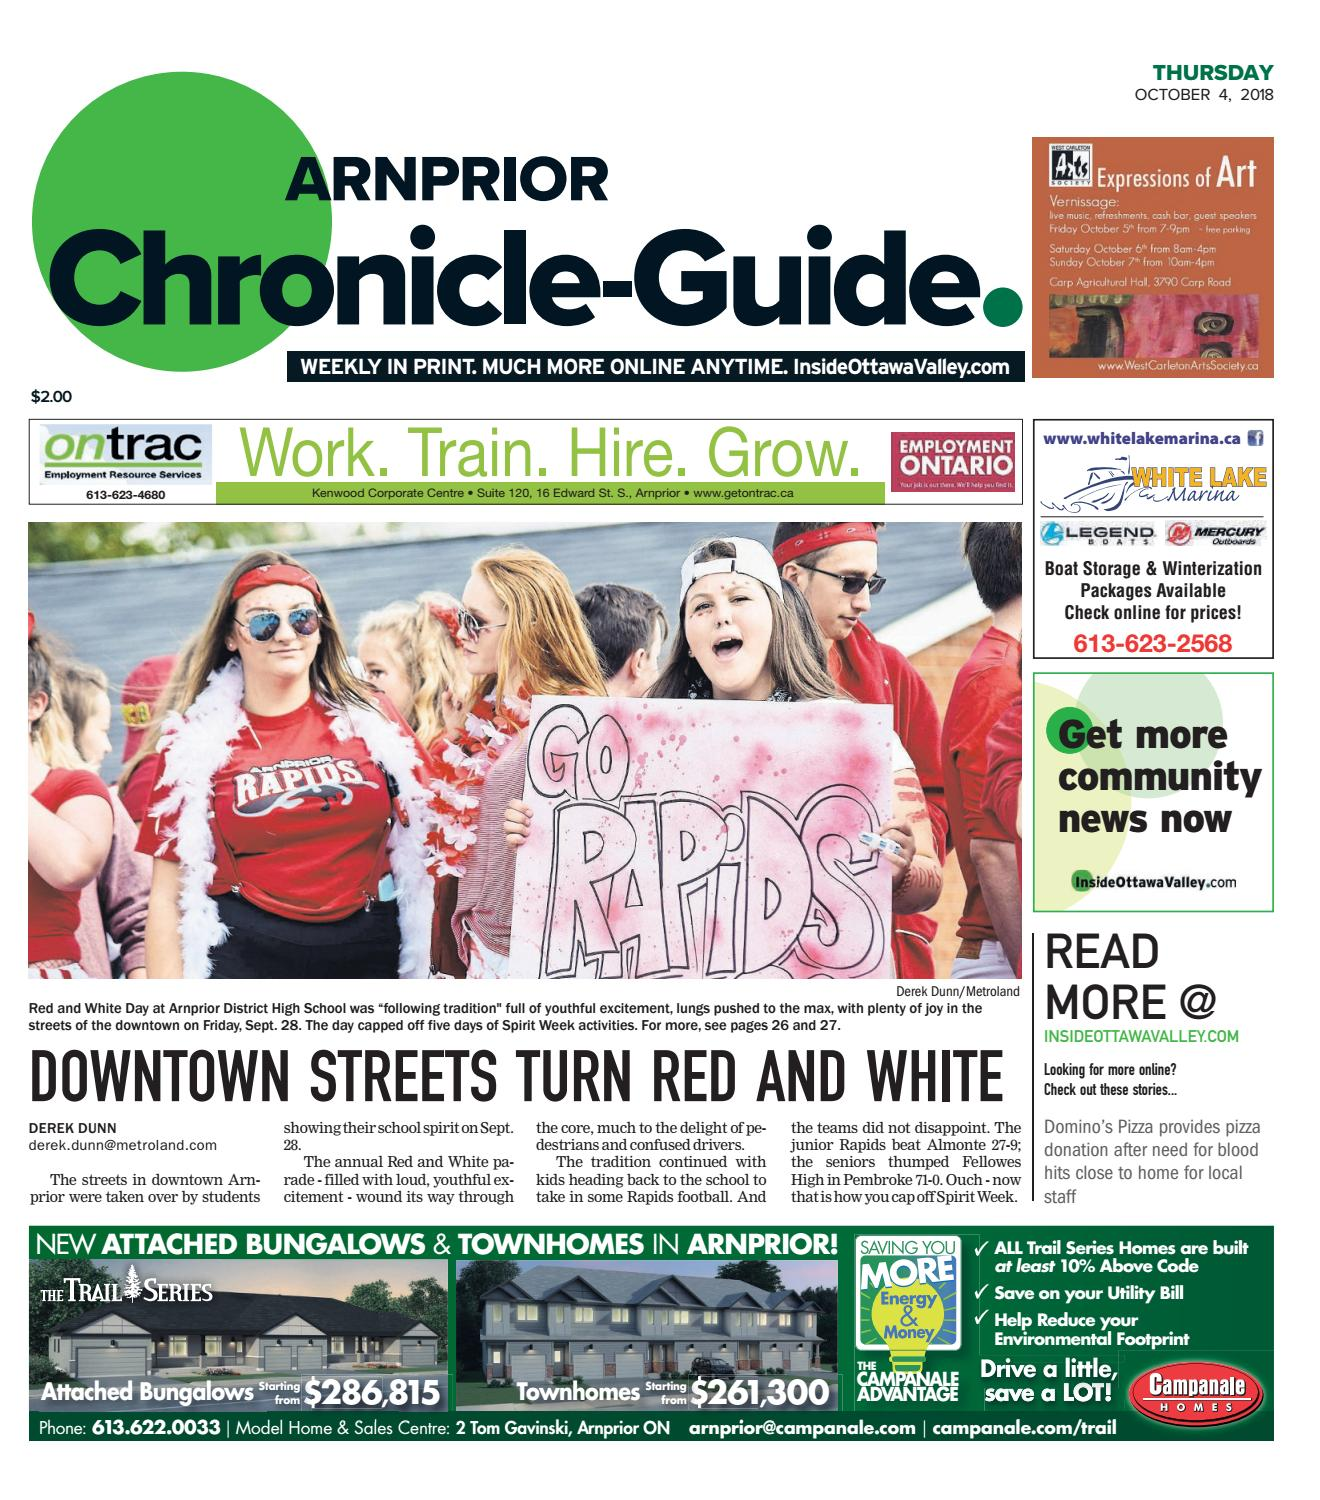 Arn a 20181004 by metroland east arnprior chronicle guide issuu